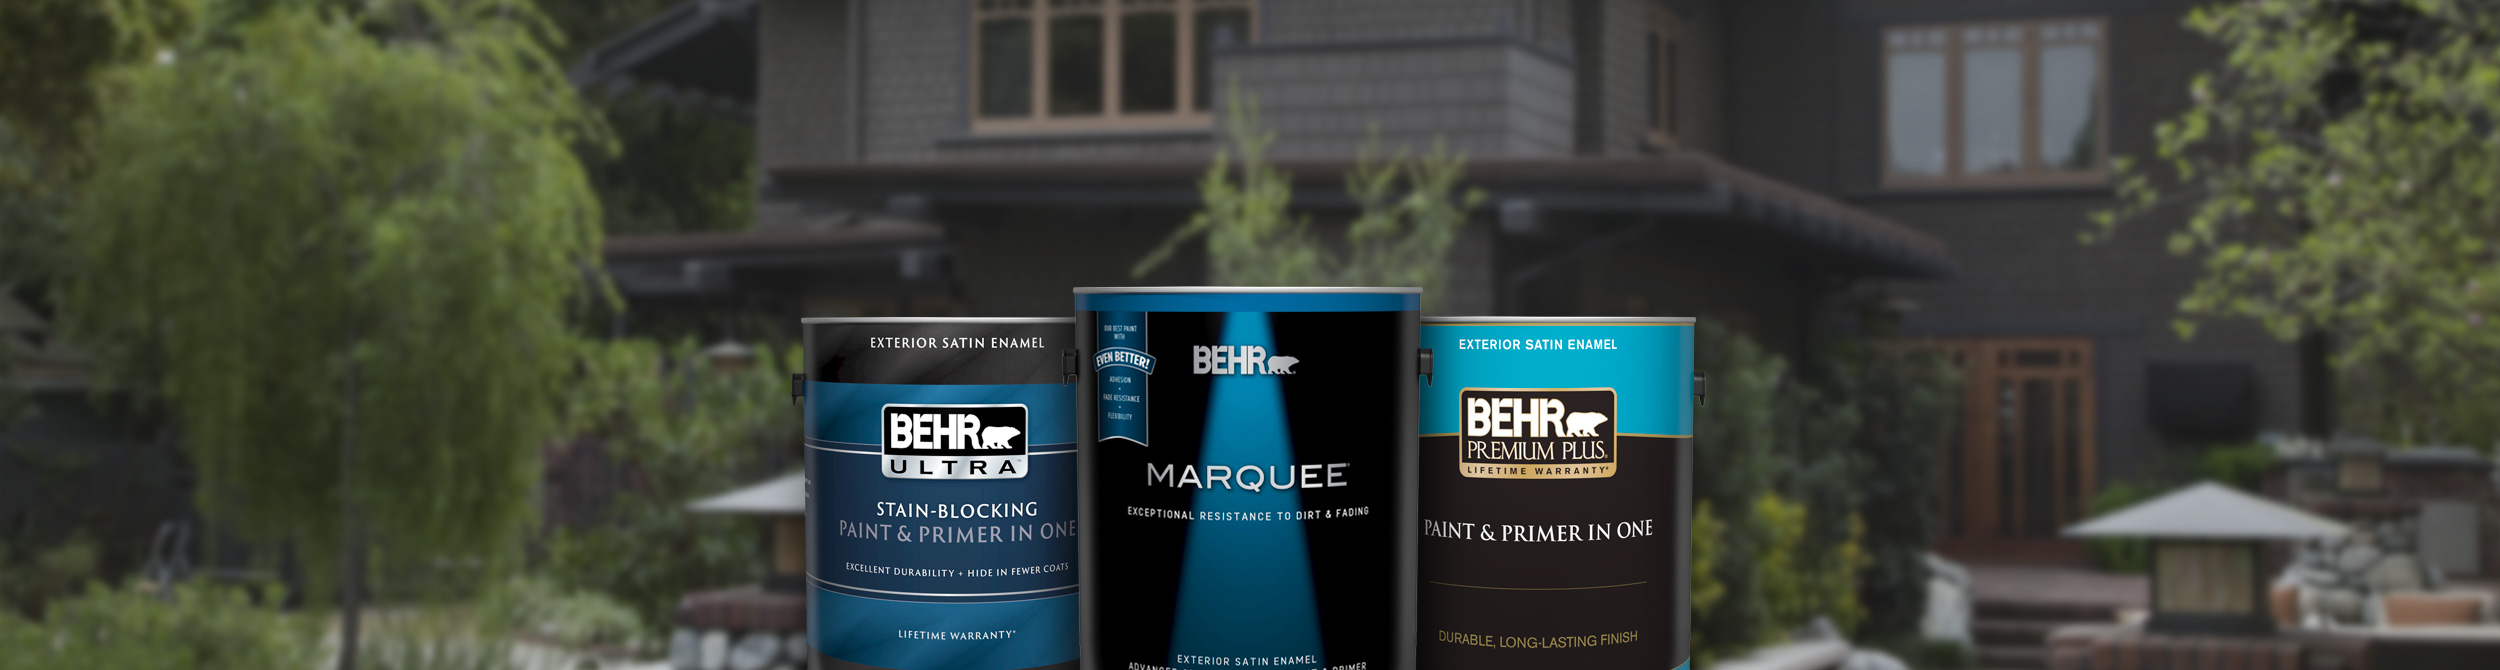 Exterior Paint and Primer Products for Your Home | Behr